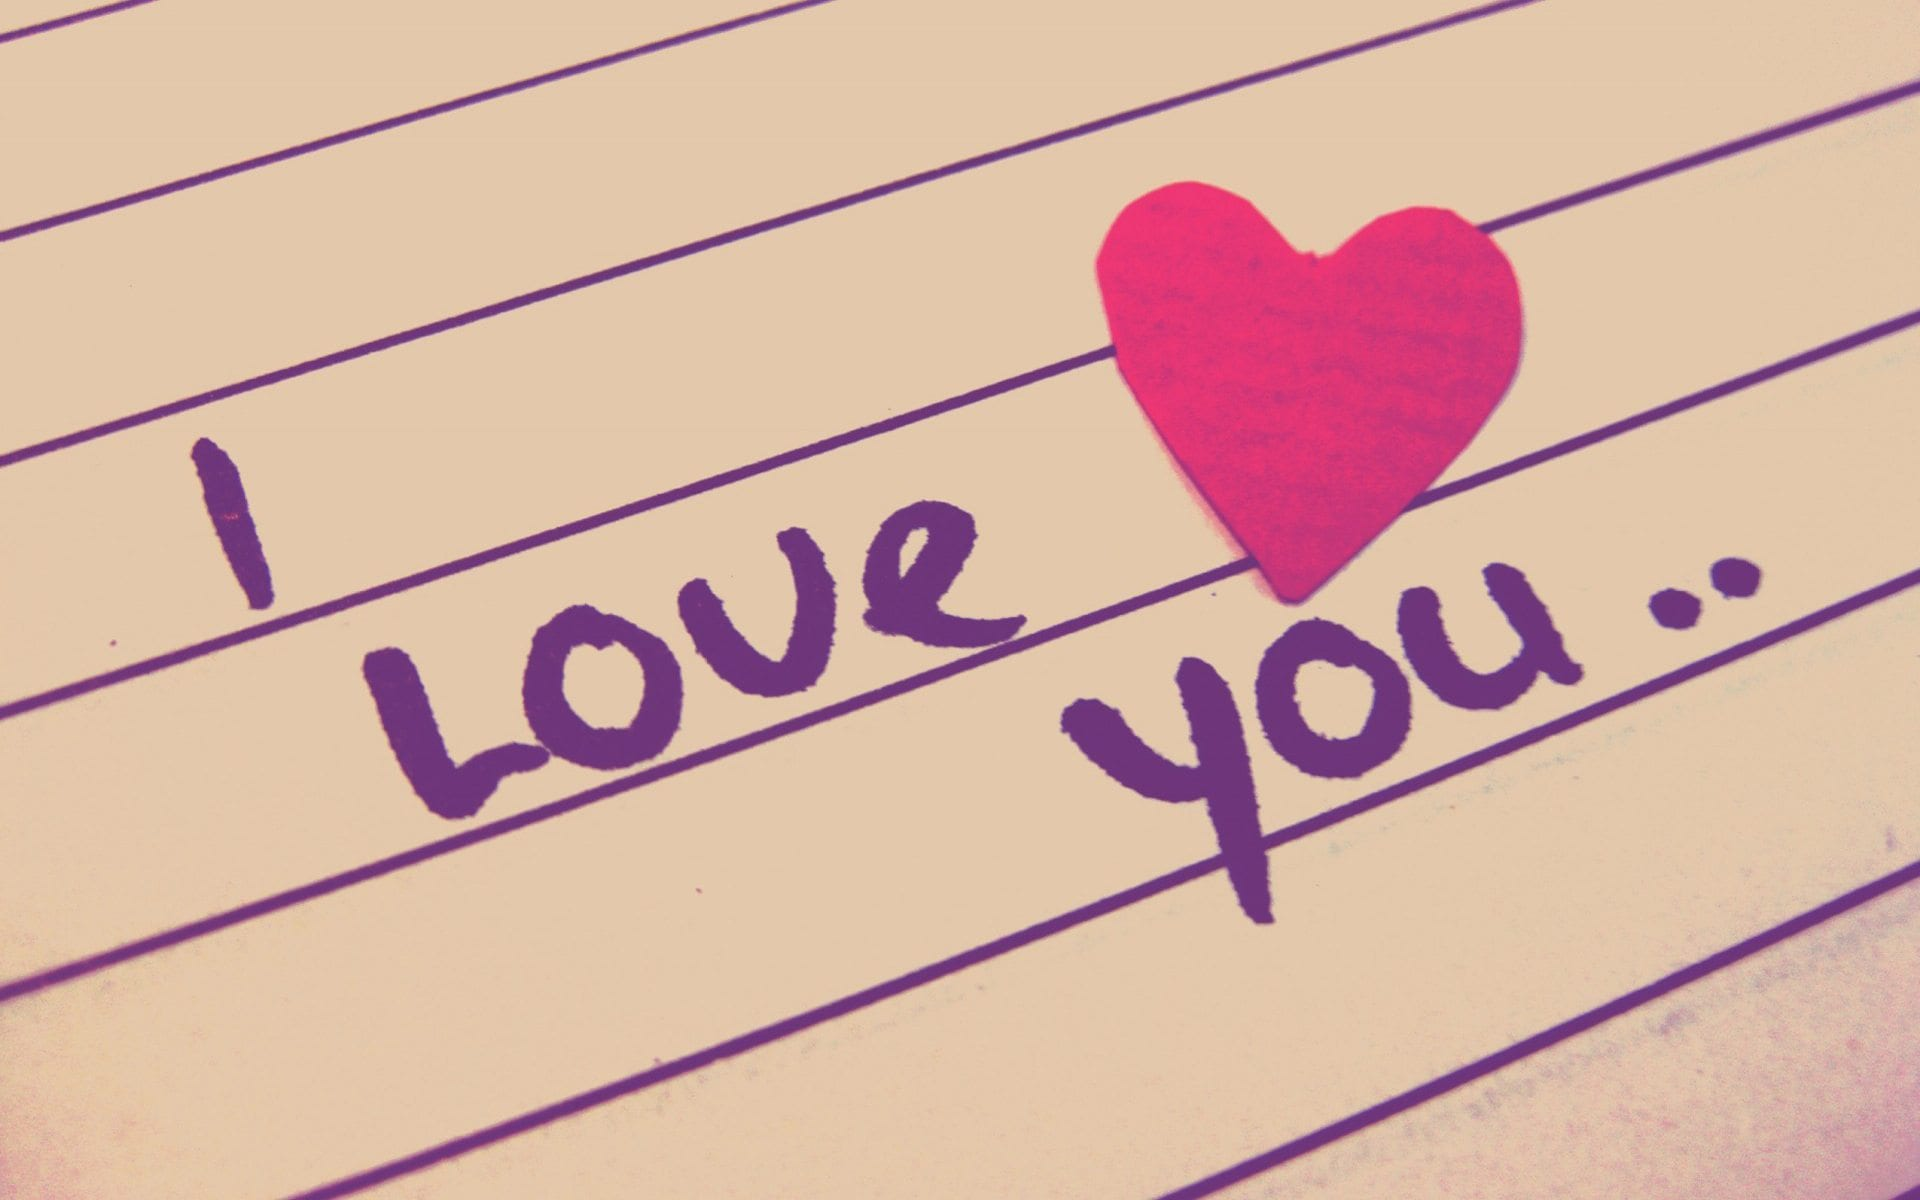 I_love_you_heart_quotes